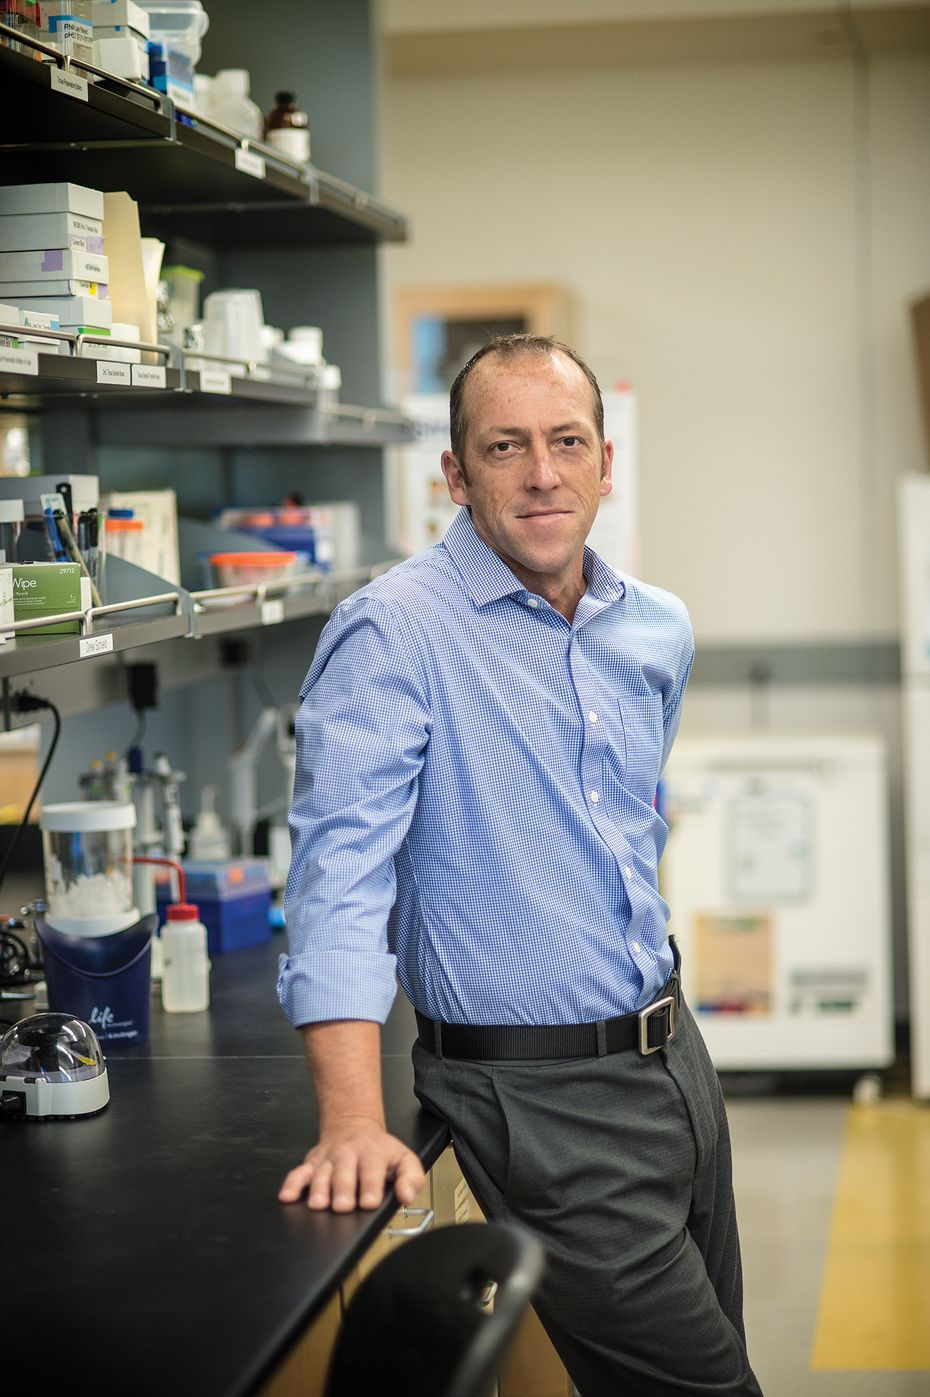 Todd Castoe, an associate professor of biology at UT-Arlington, said a lack of opportunity may have prevented viruses similar to COVID-19 from jumping into humans earlier.